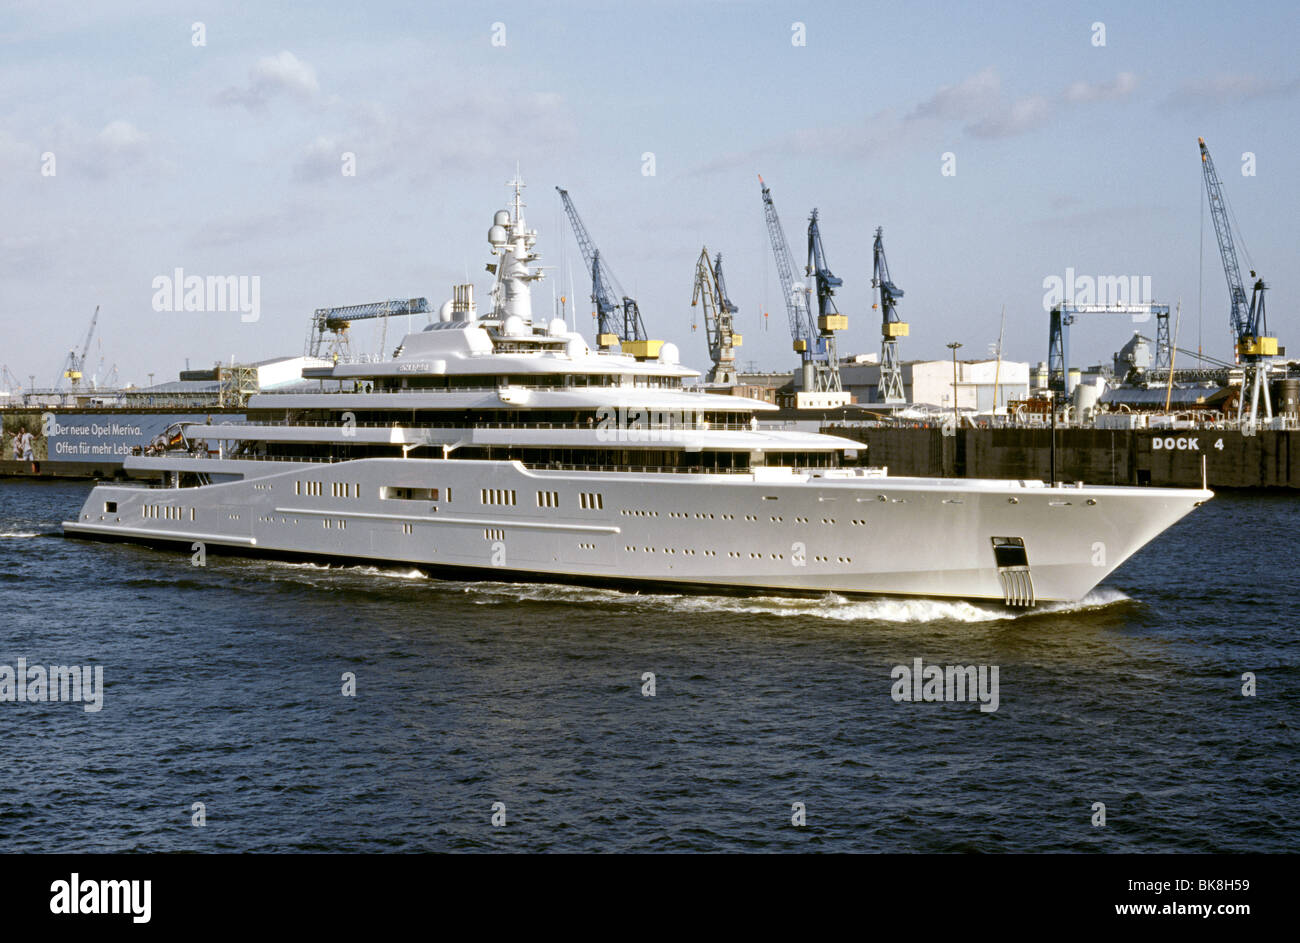 April 16, 2010 - The world's largest privately owned yacht, the Eclipse, passes Blohm + Voss ship yard in the - Stock Image